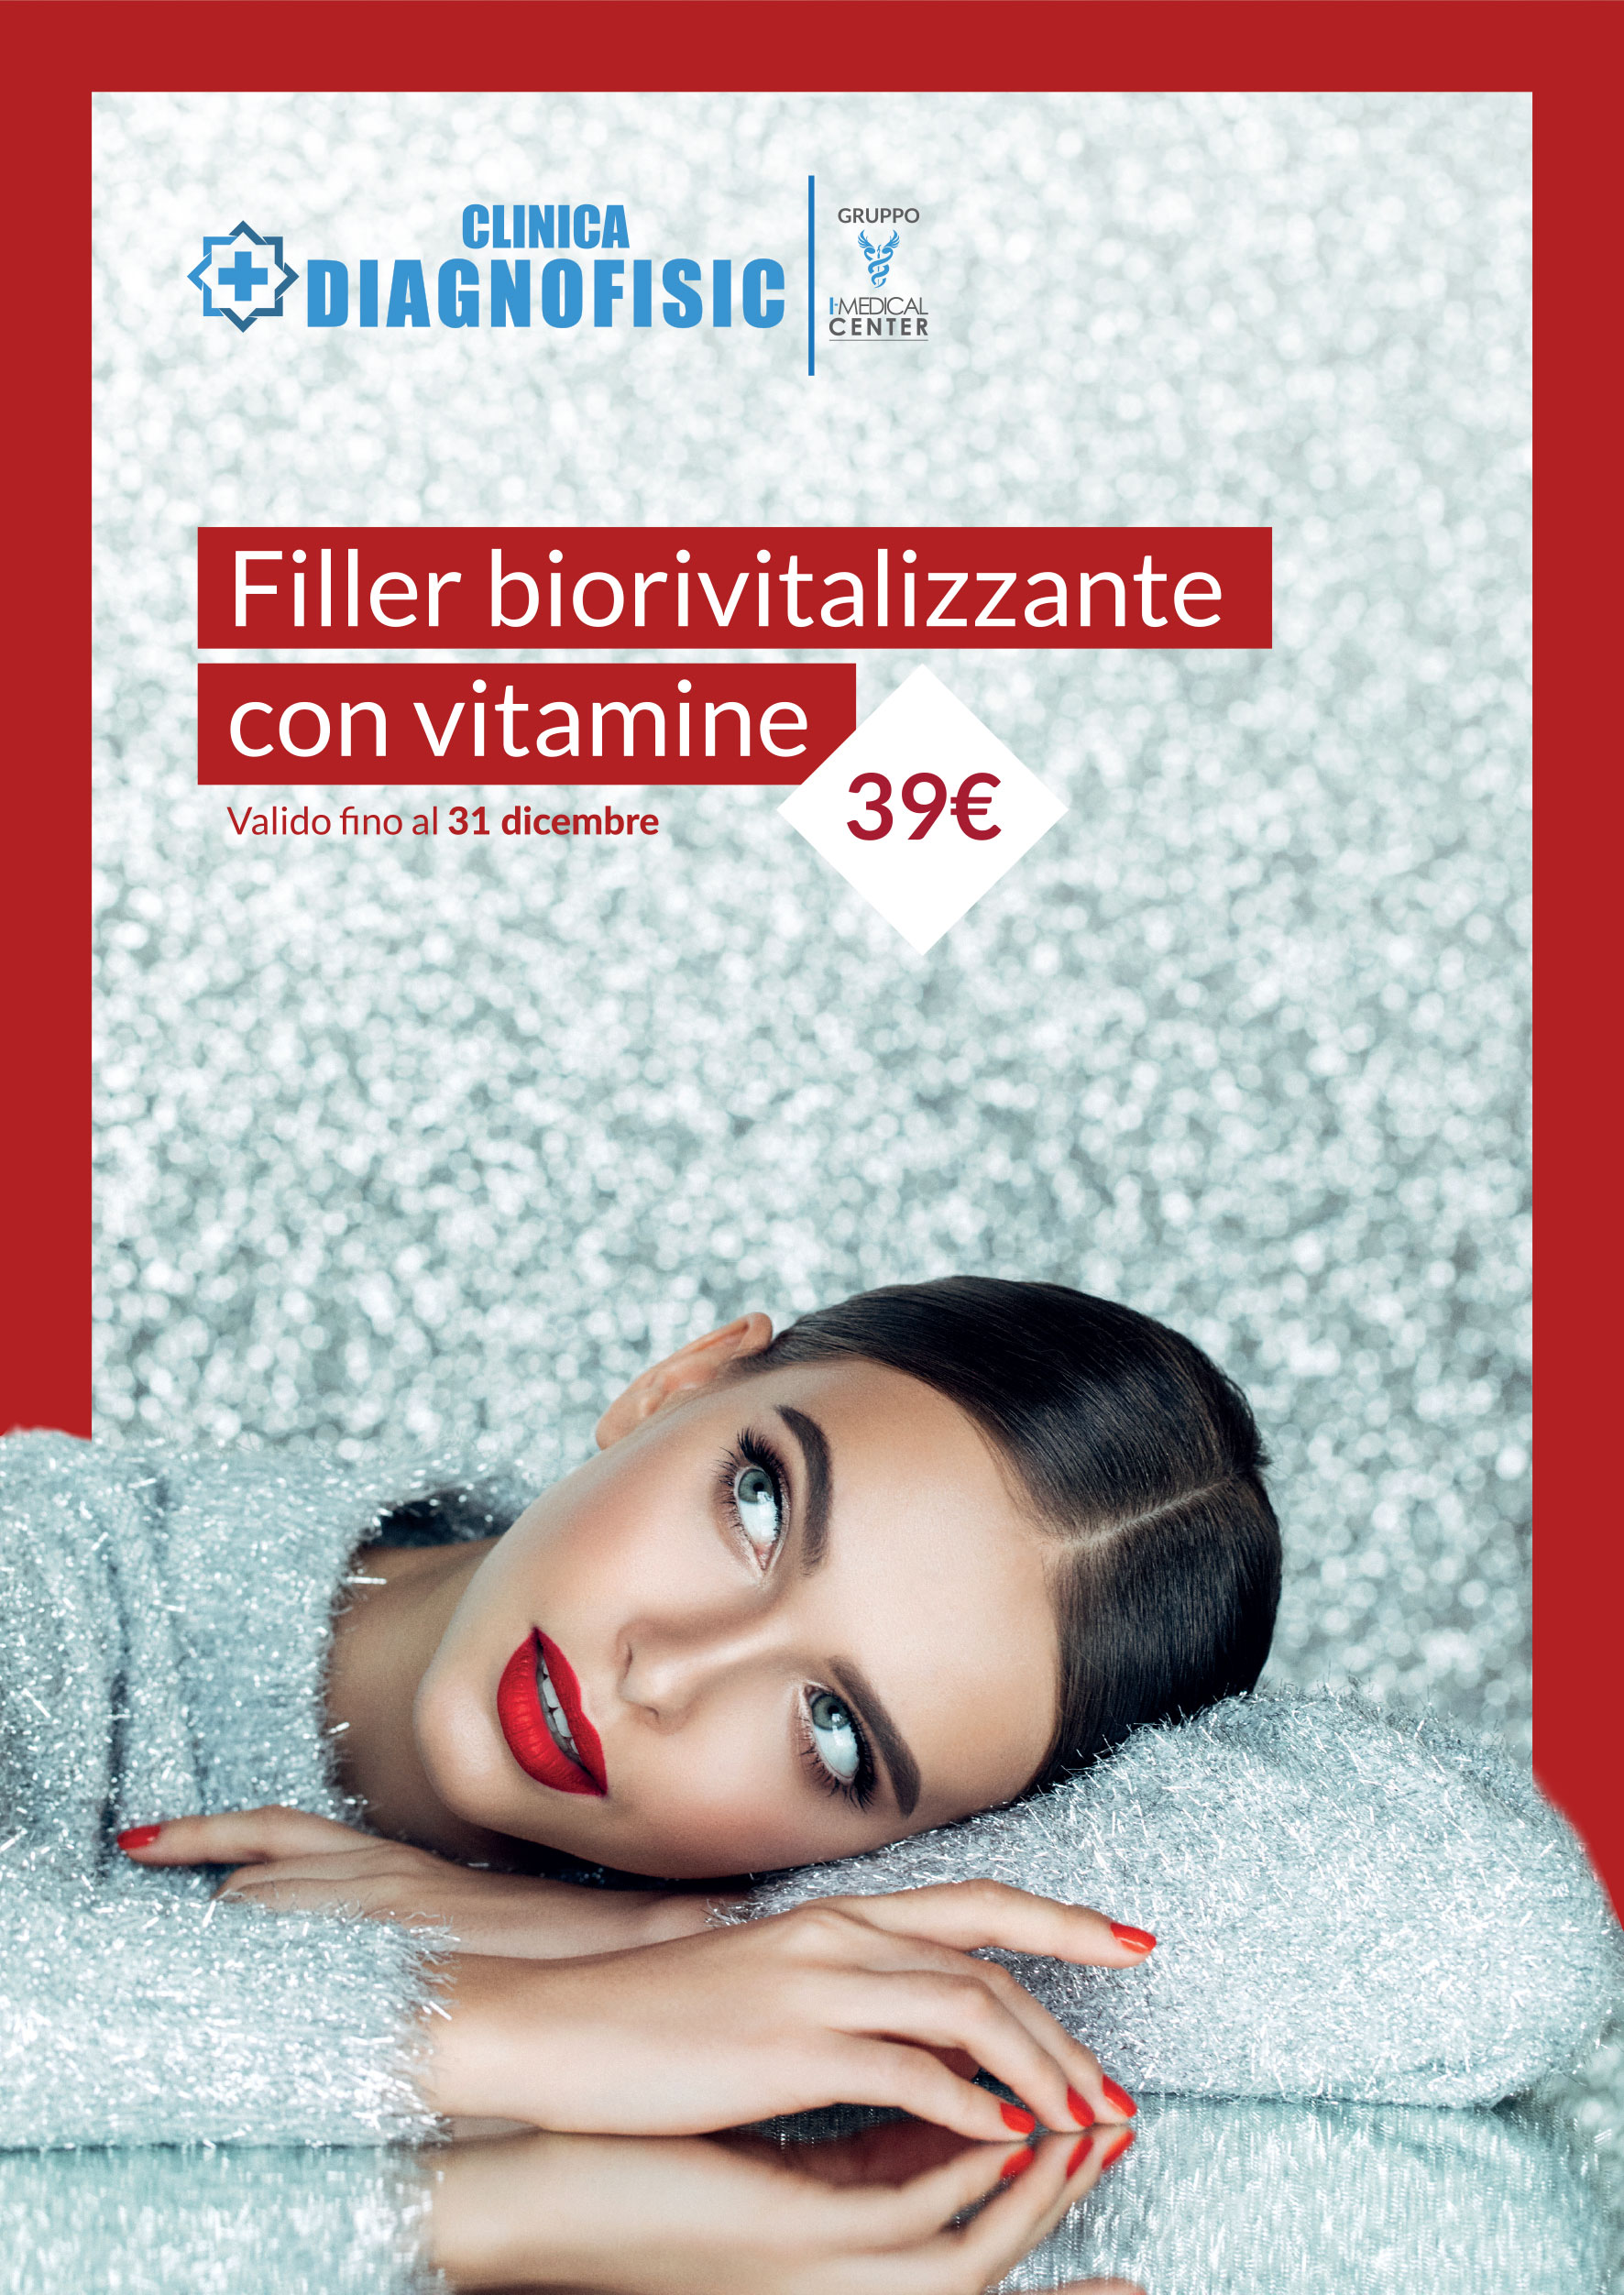 Diagnofisic Milano filler